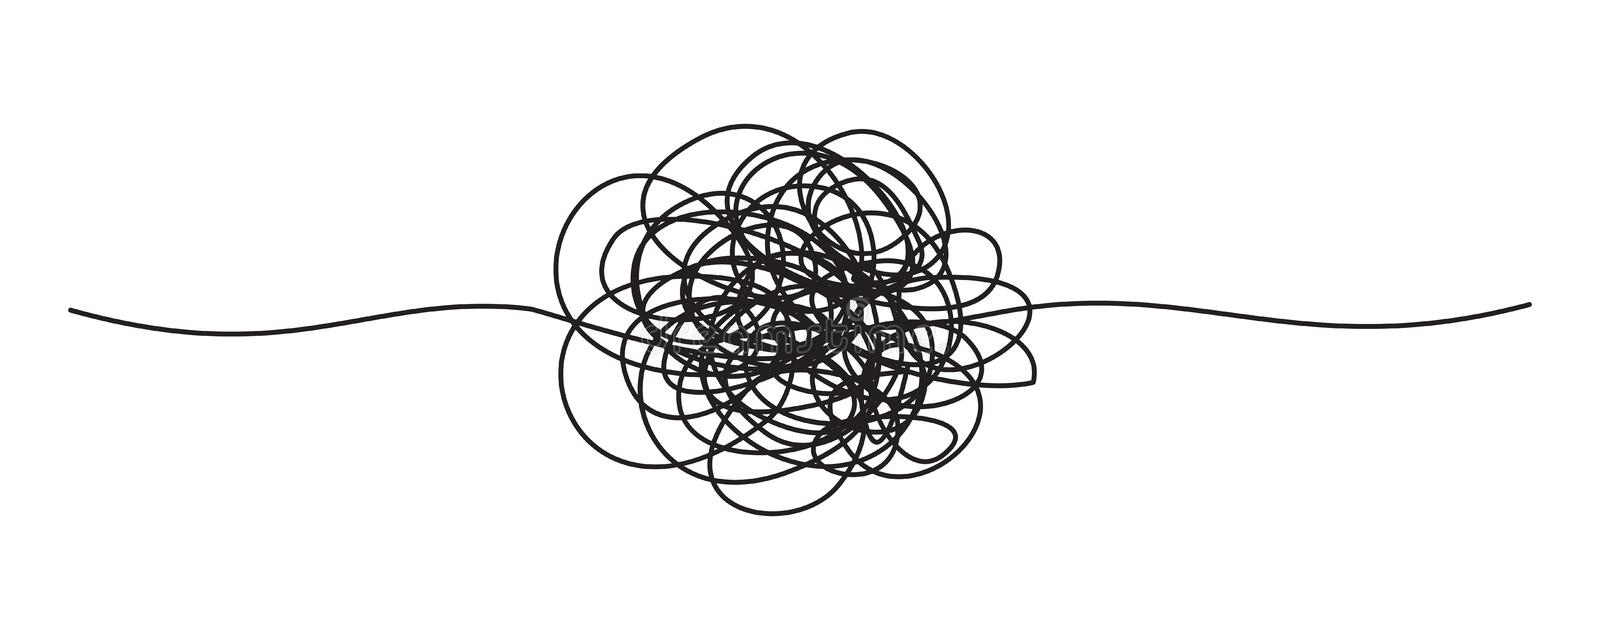 Tangled grungy round scribble vector illustration